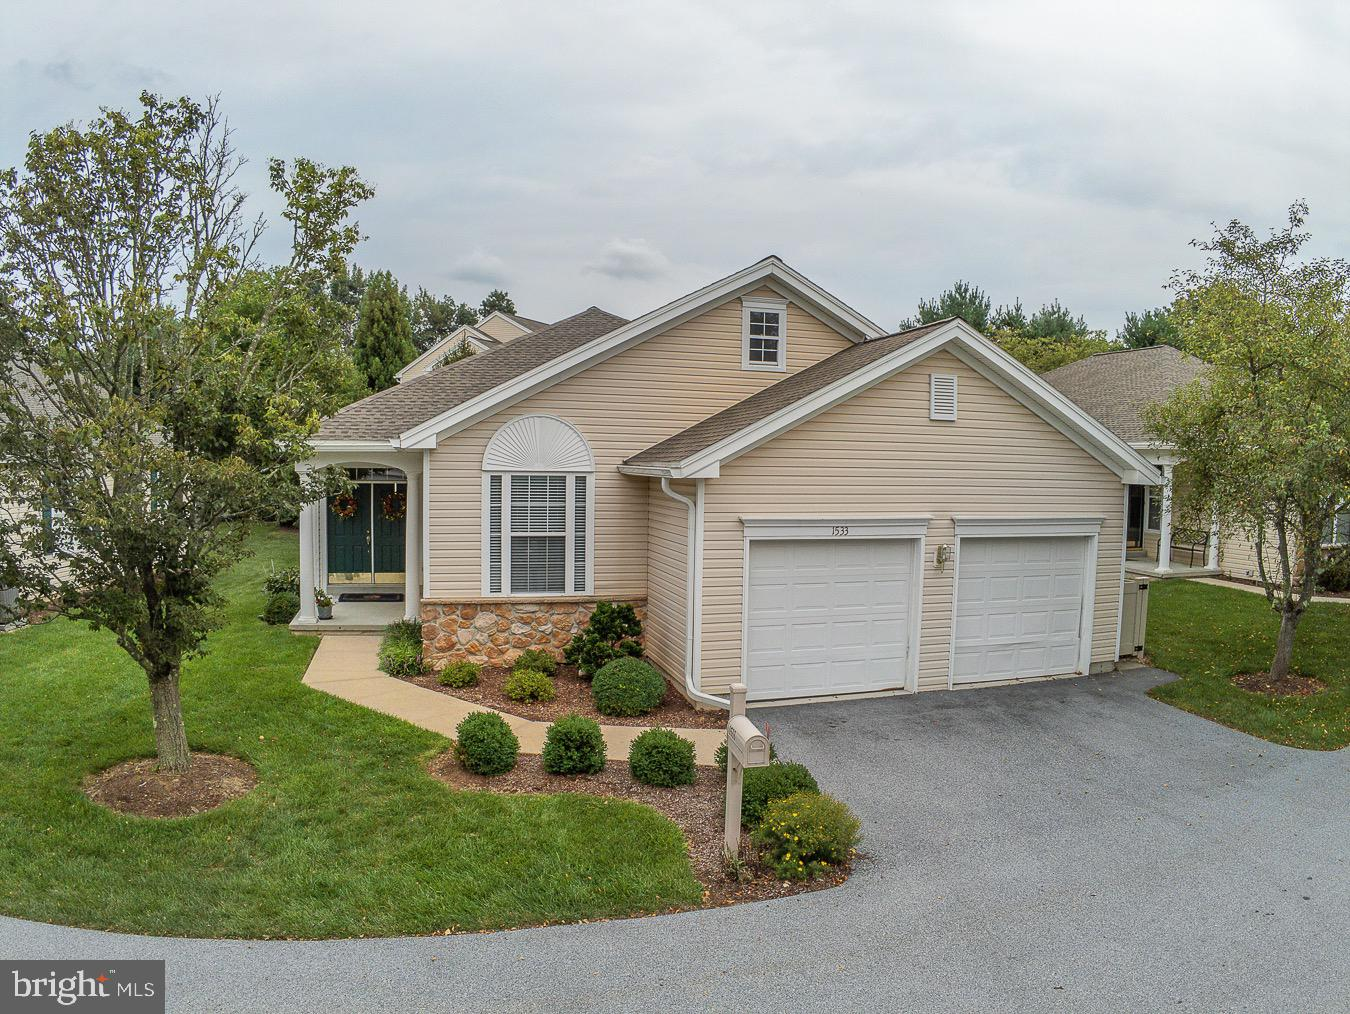 1533 Ulster Way West Chester, PA 19380